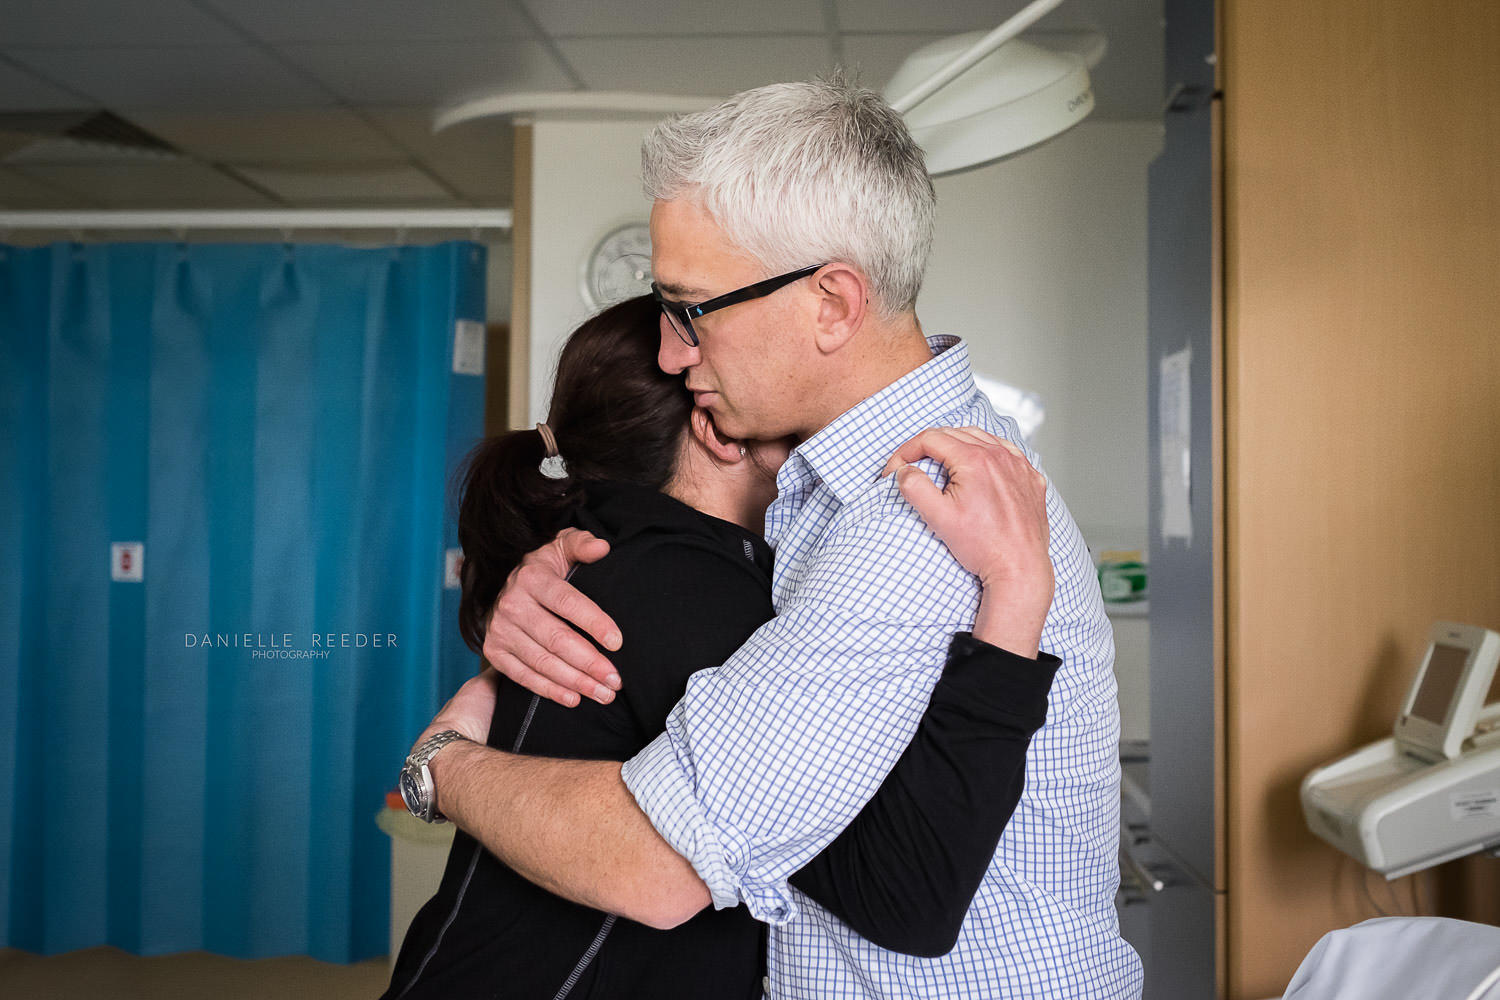 Husband and wife embraced in a tender hug in the delivery suite at Bristol hospital.